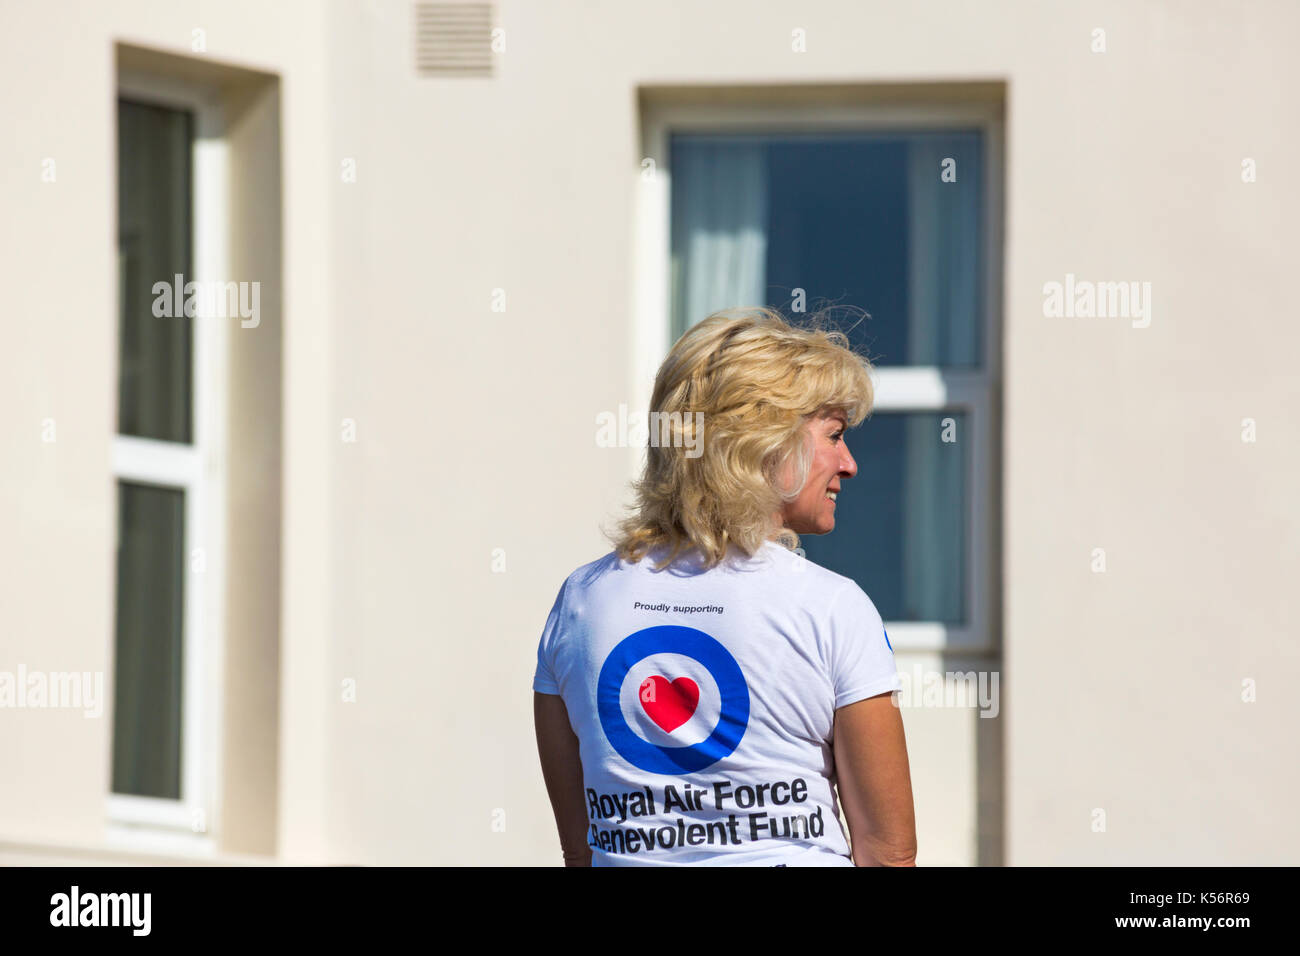 Proudly supporting Royal Air Force Benevolent Fund - woman supporting charity wearing t-shirt at Bournemouth Air - Stock Image